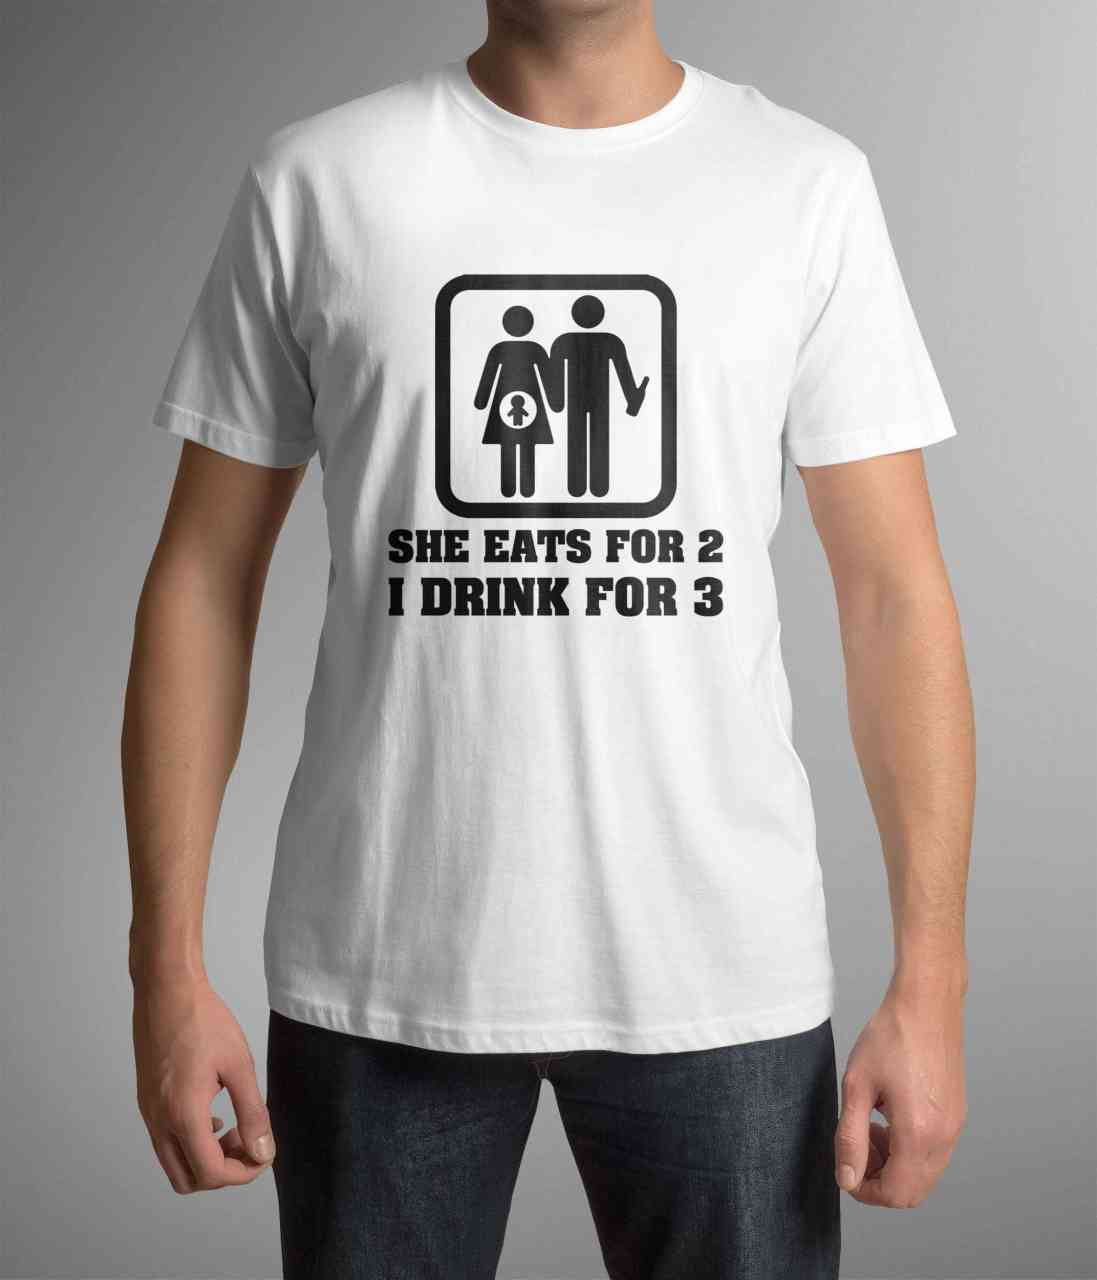 She Eats For 2, I Drink For 3 | T-Shirt | Papa Fun Shirt